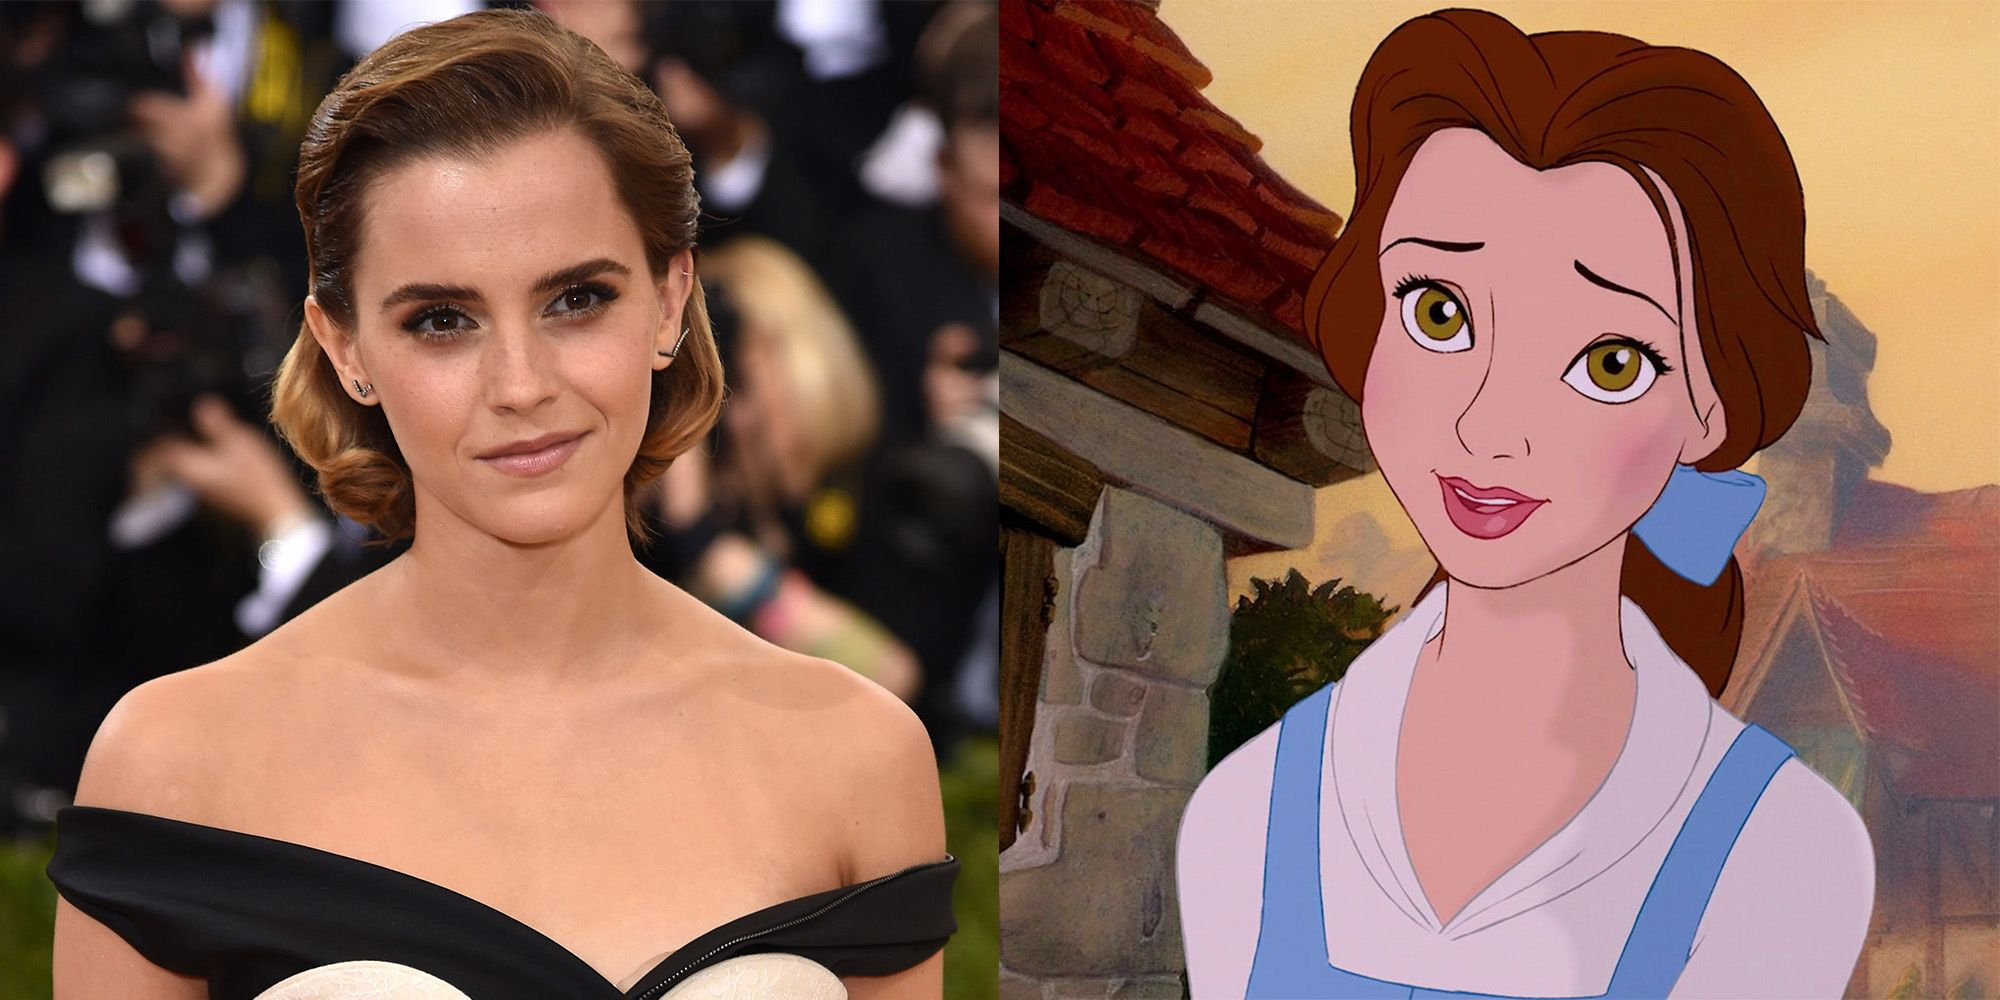 Emma Watson S Beauty And The Beast Costume New Dress For Emma Watson S Belle